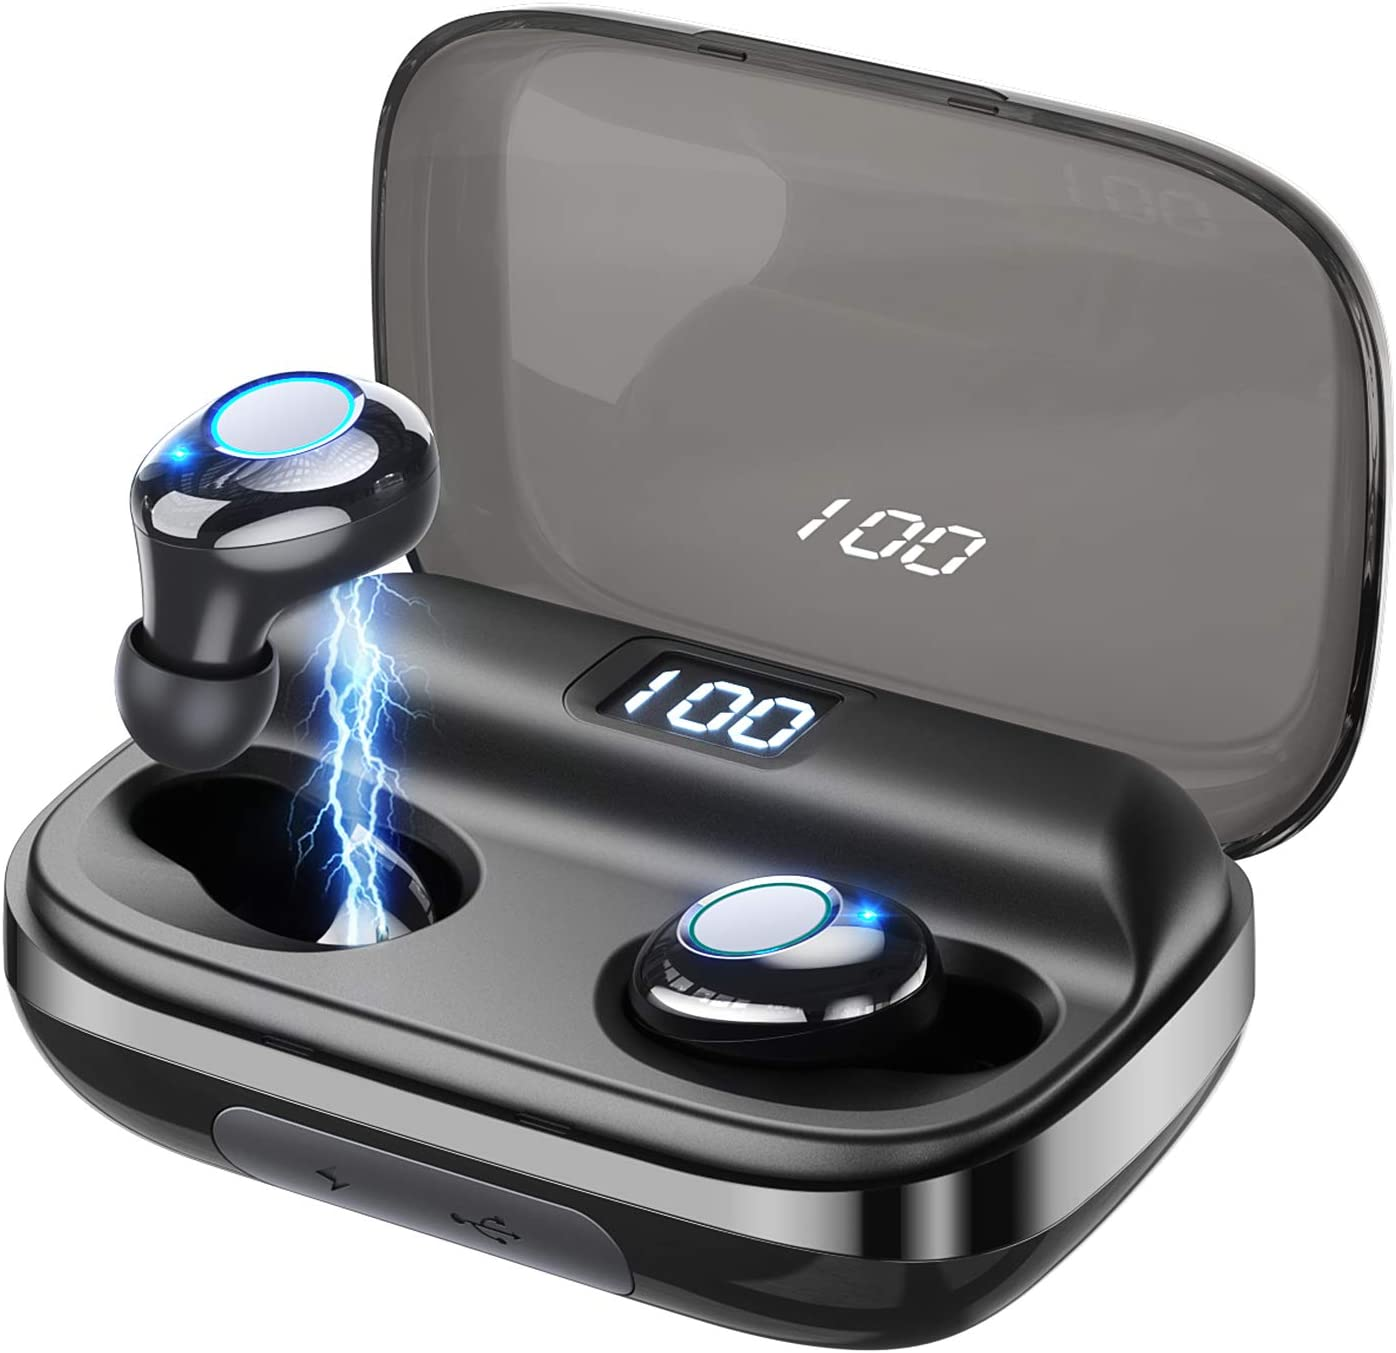 chrome GUSGU wireless earbuds in their charging case